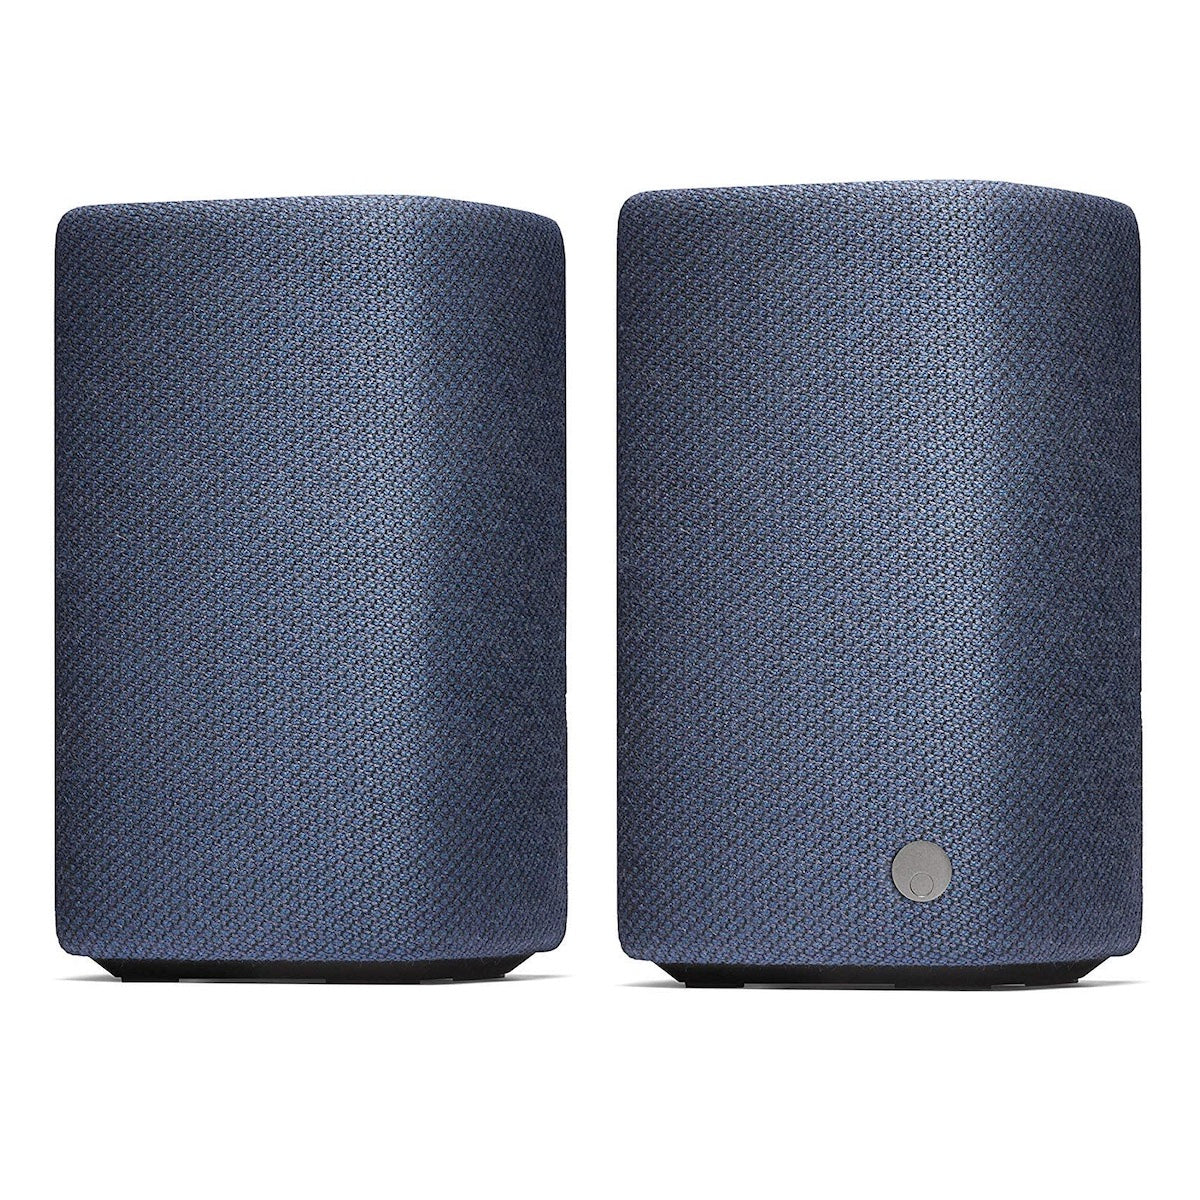 Cambridge Audio Yoyo (M) - Portable Stereo Bluetooth Speaker System - Pair - AVStore